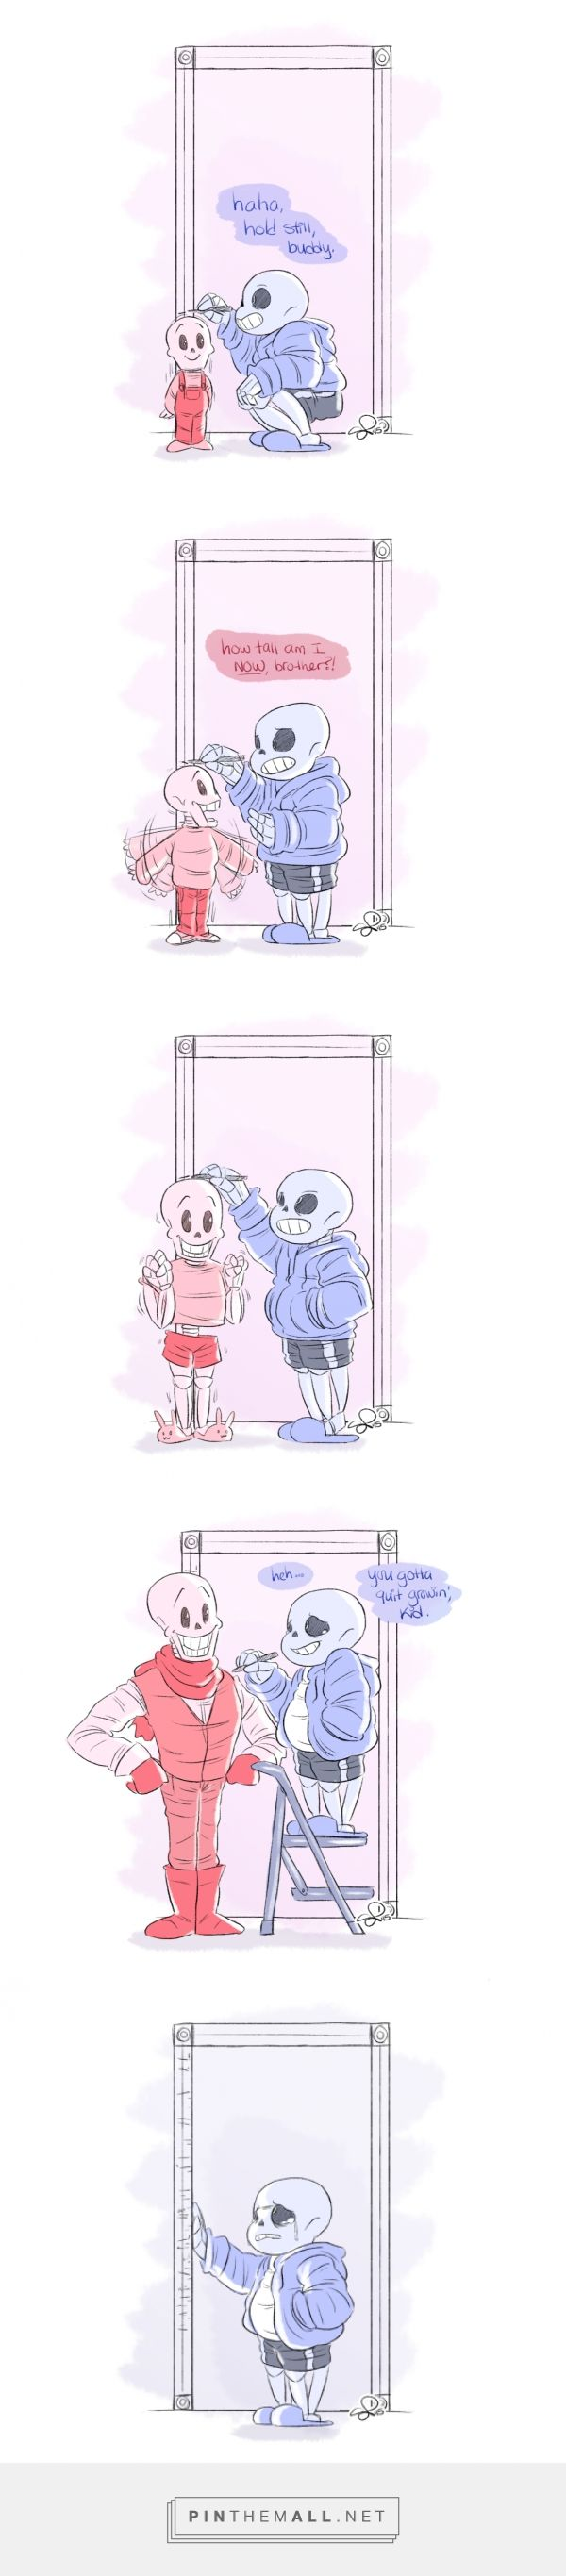 Sans and Papyrus - comic